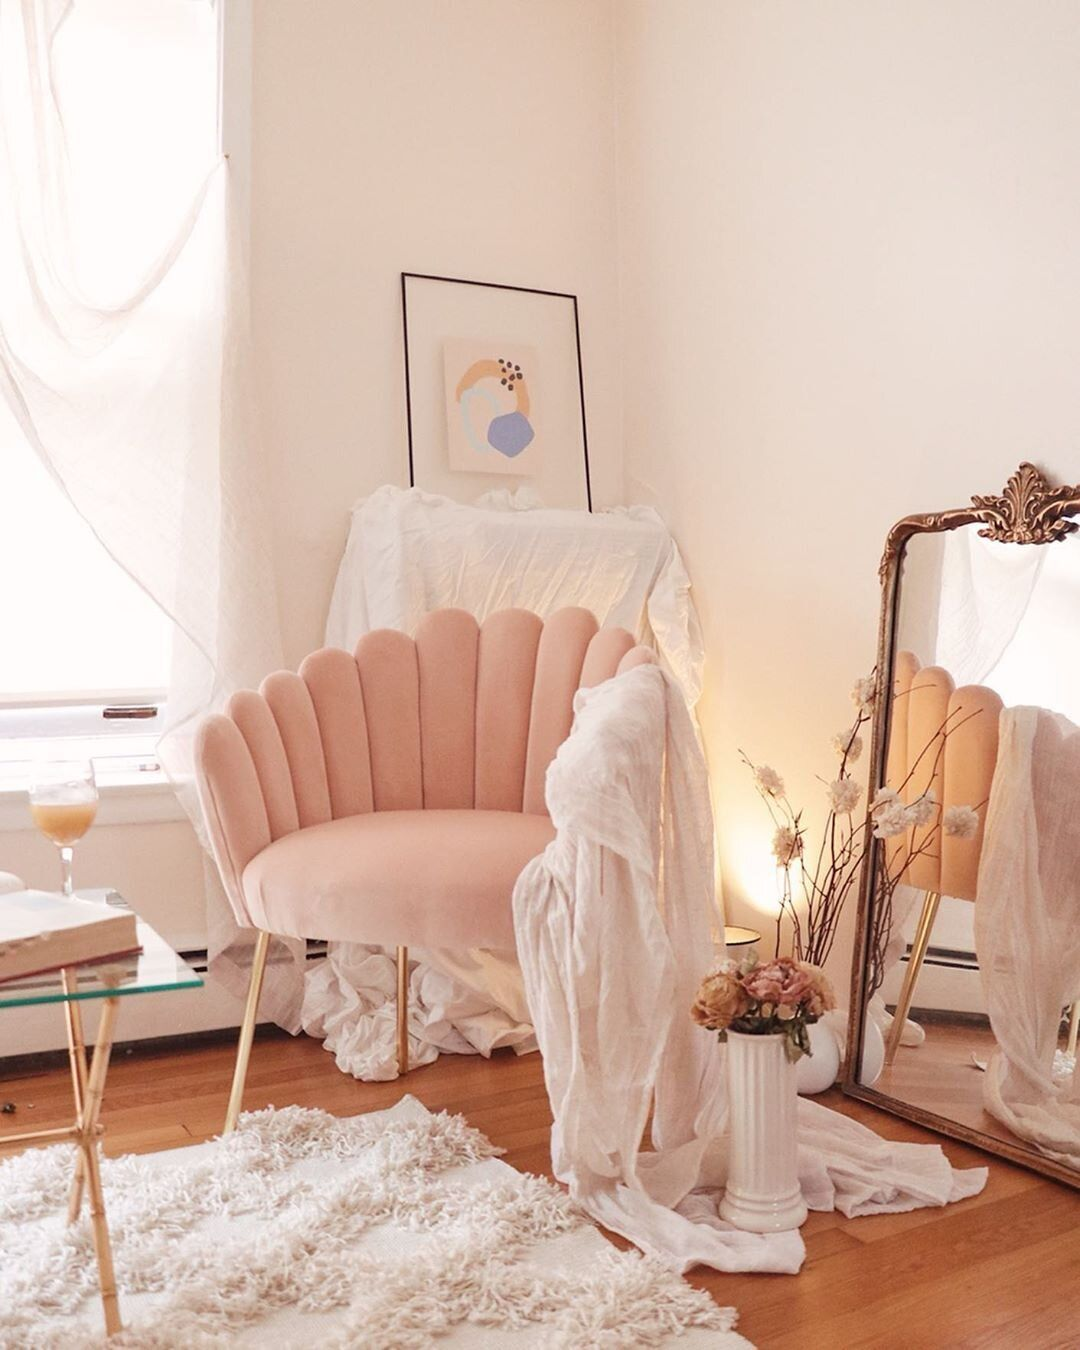 The List Issue 04 The Pink Chair You Need In Your Life Hello Lovely Living In 2020 Room Ideas Bedroom Room Decor Bedroom Aesthetic Room Decor